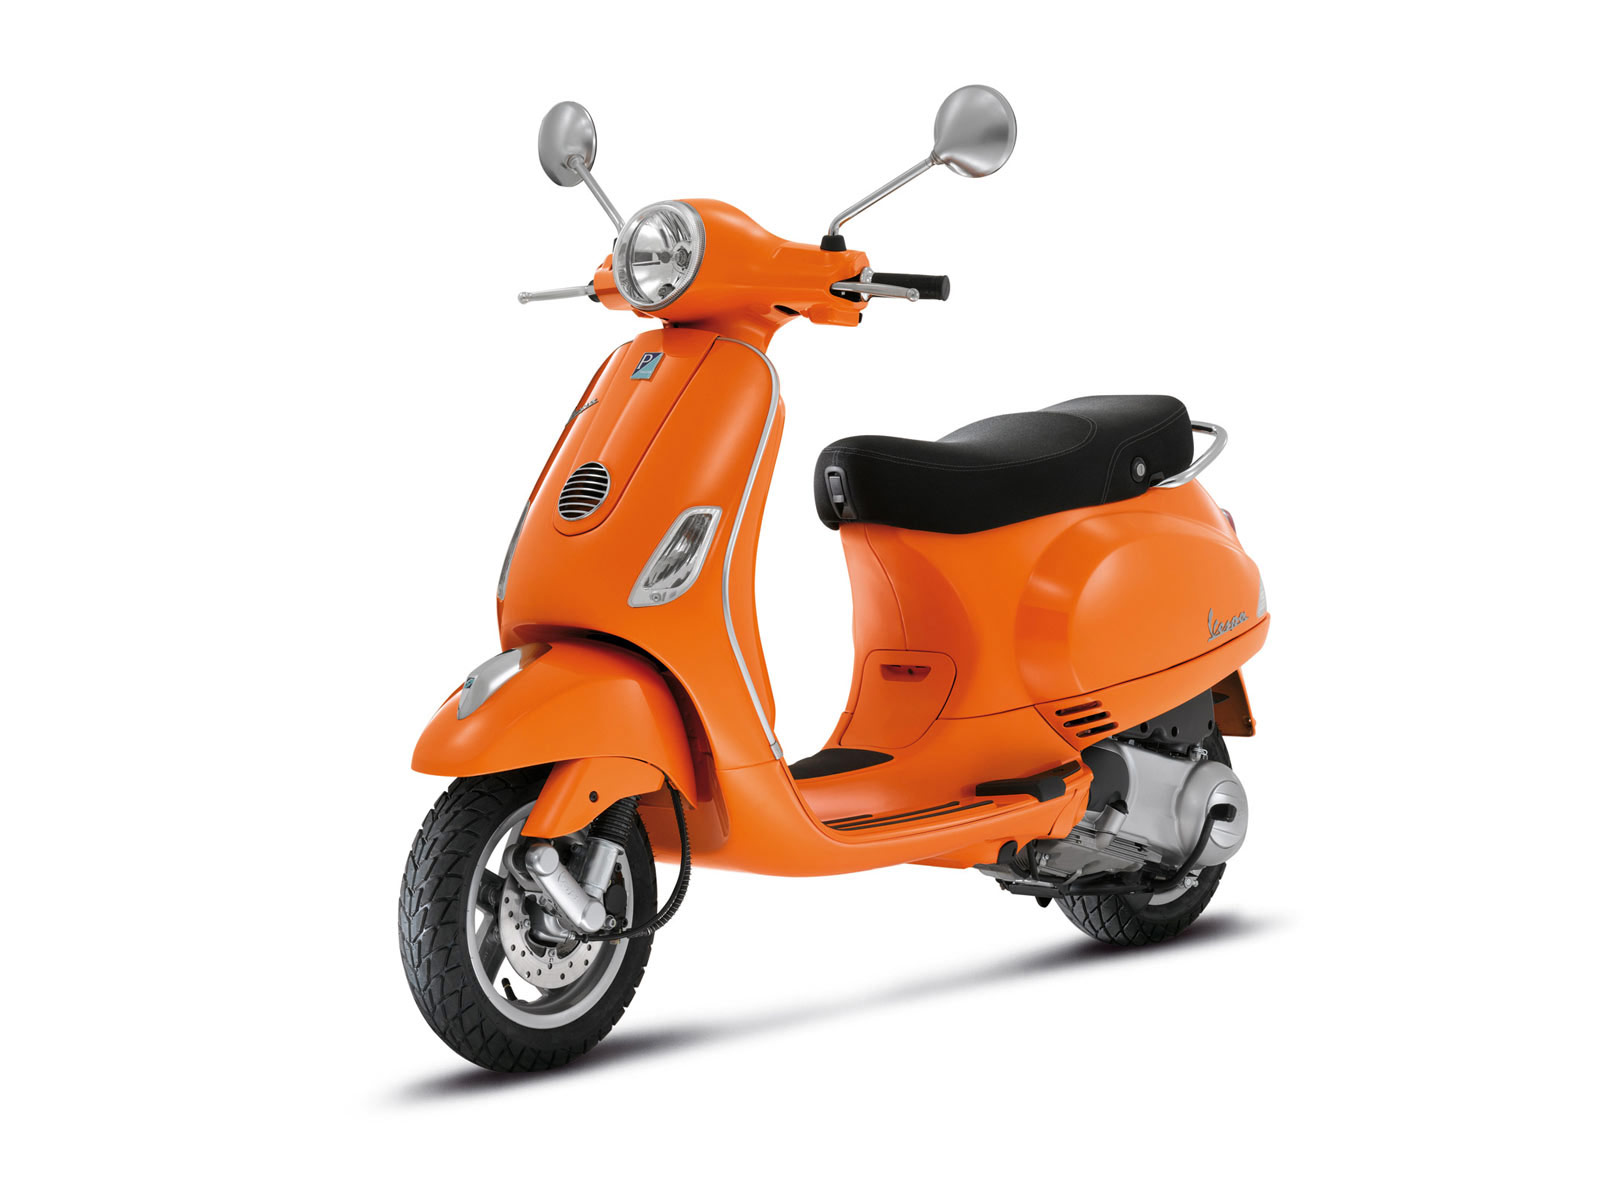 Vespa lxv photo - 10